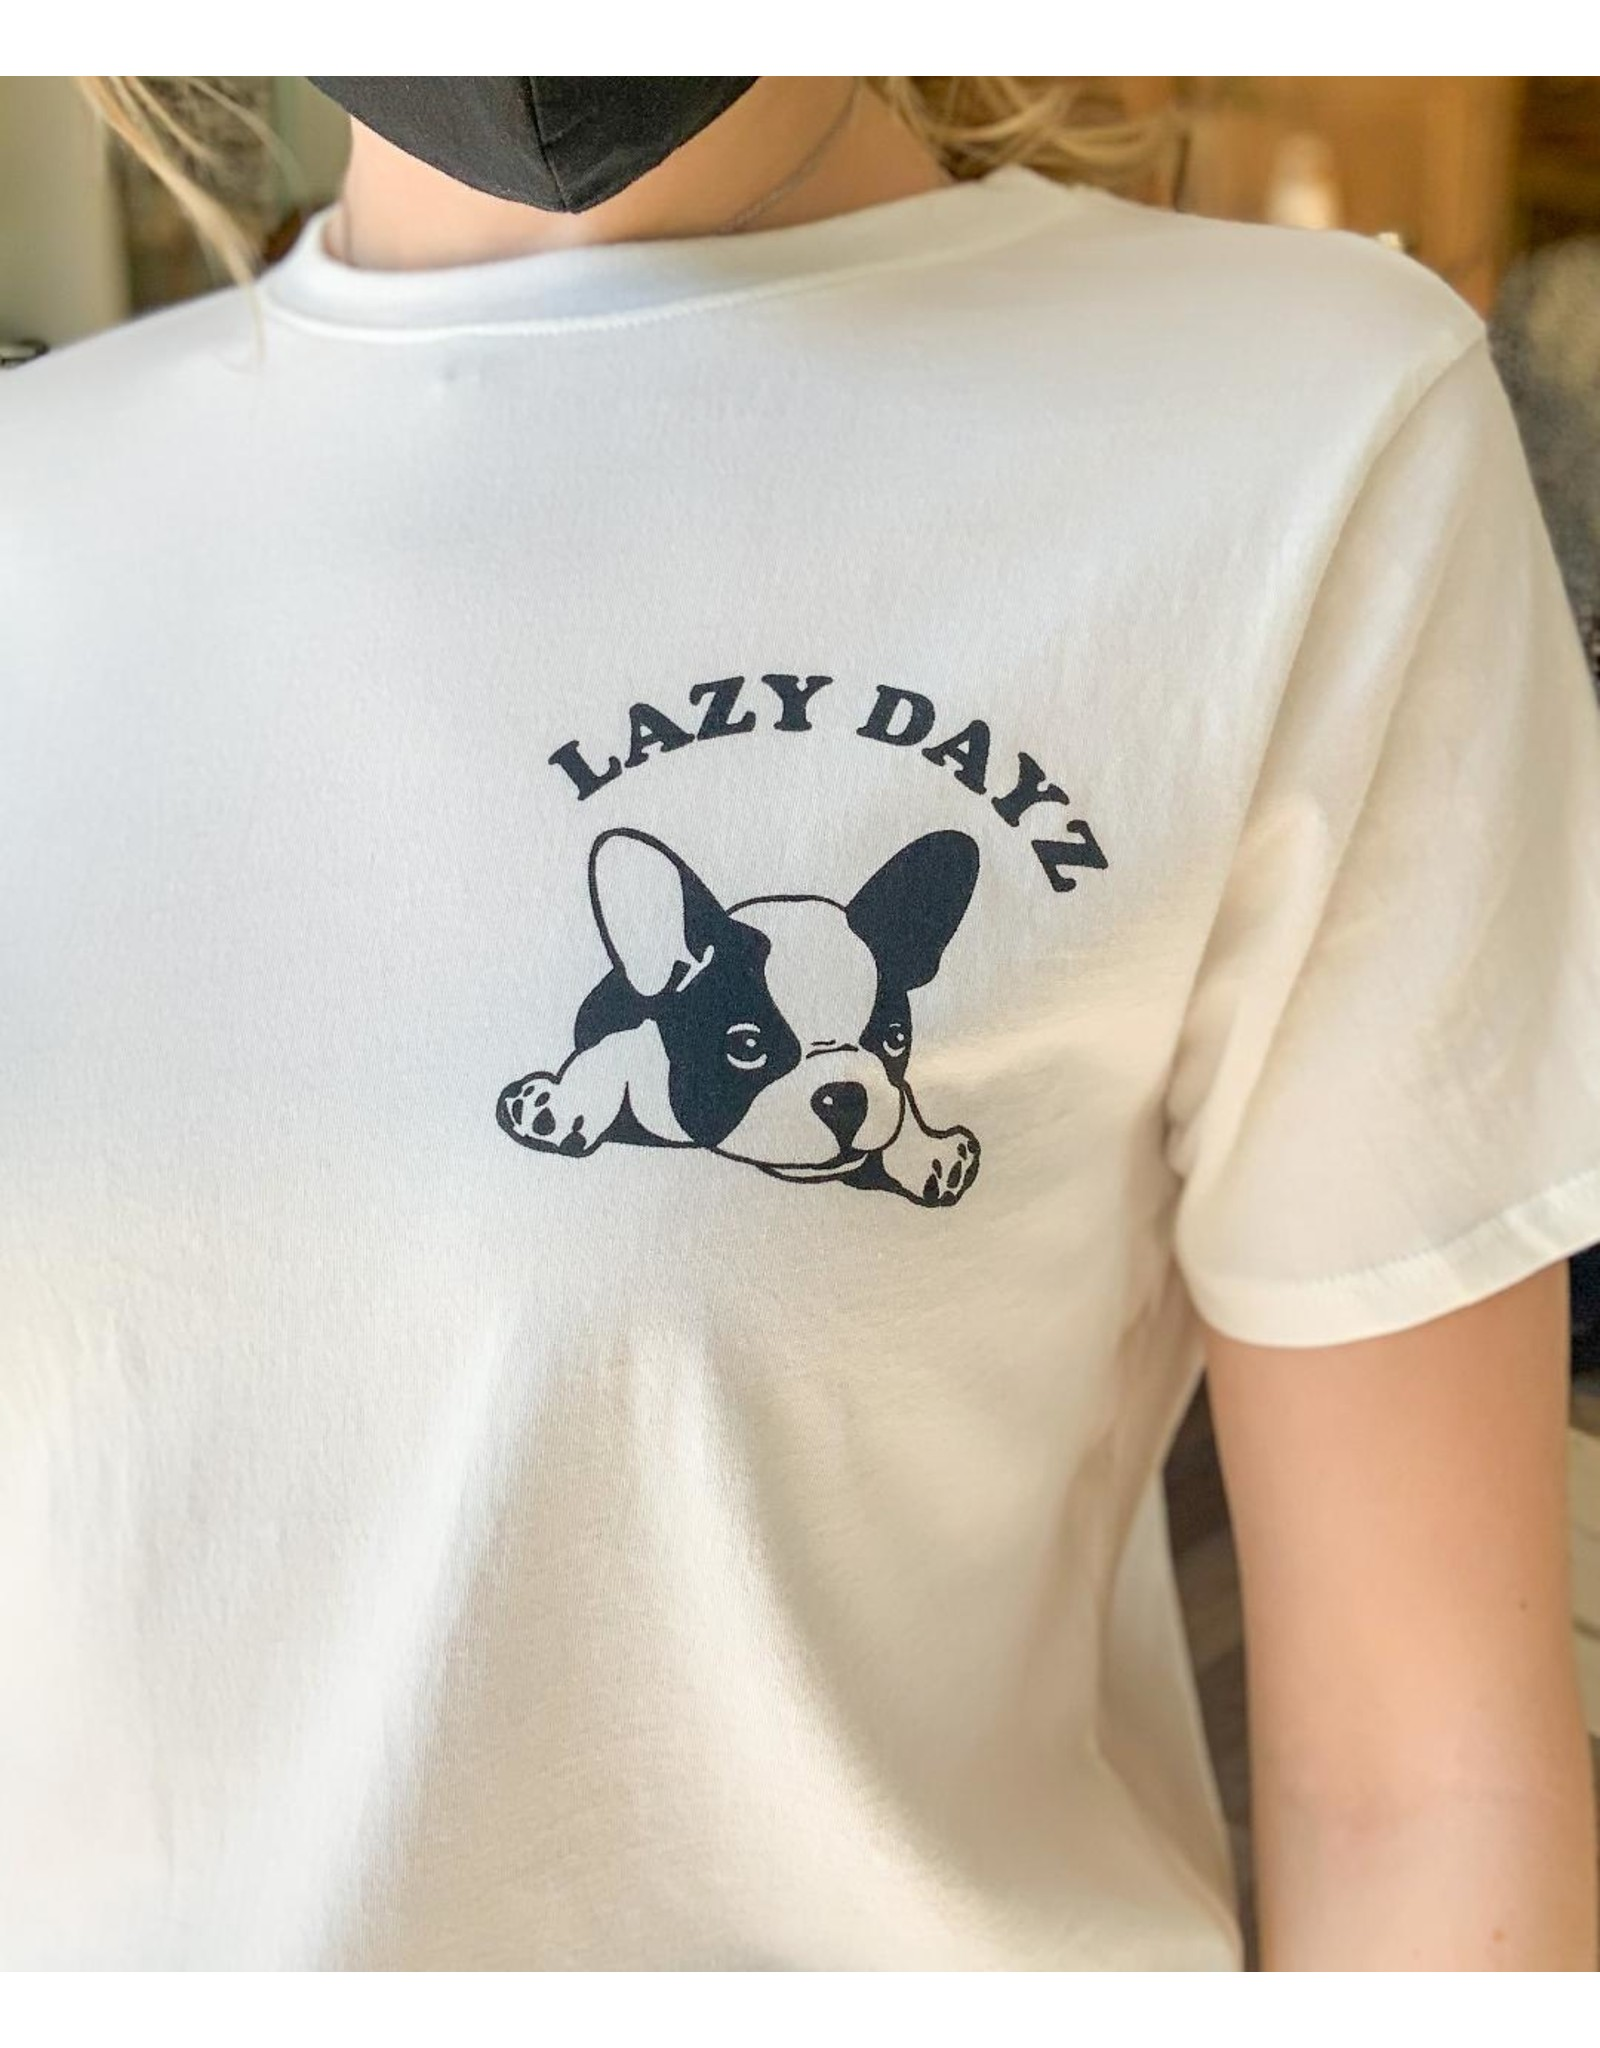 Lazy Days Graphic Tee